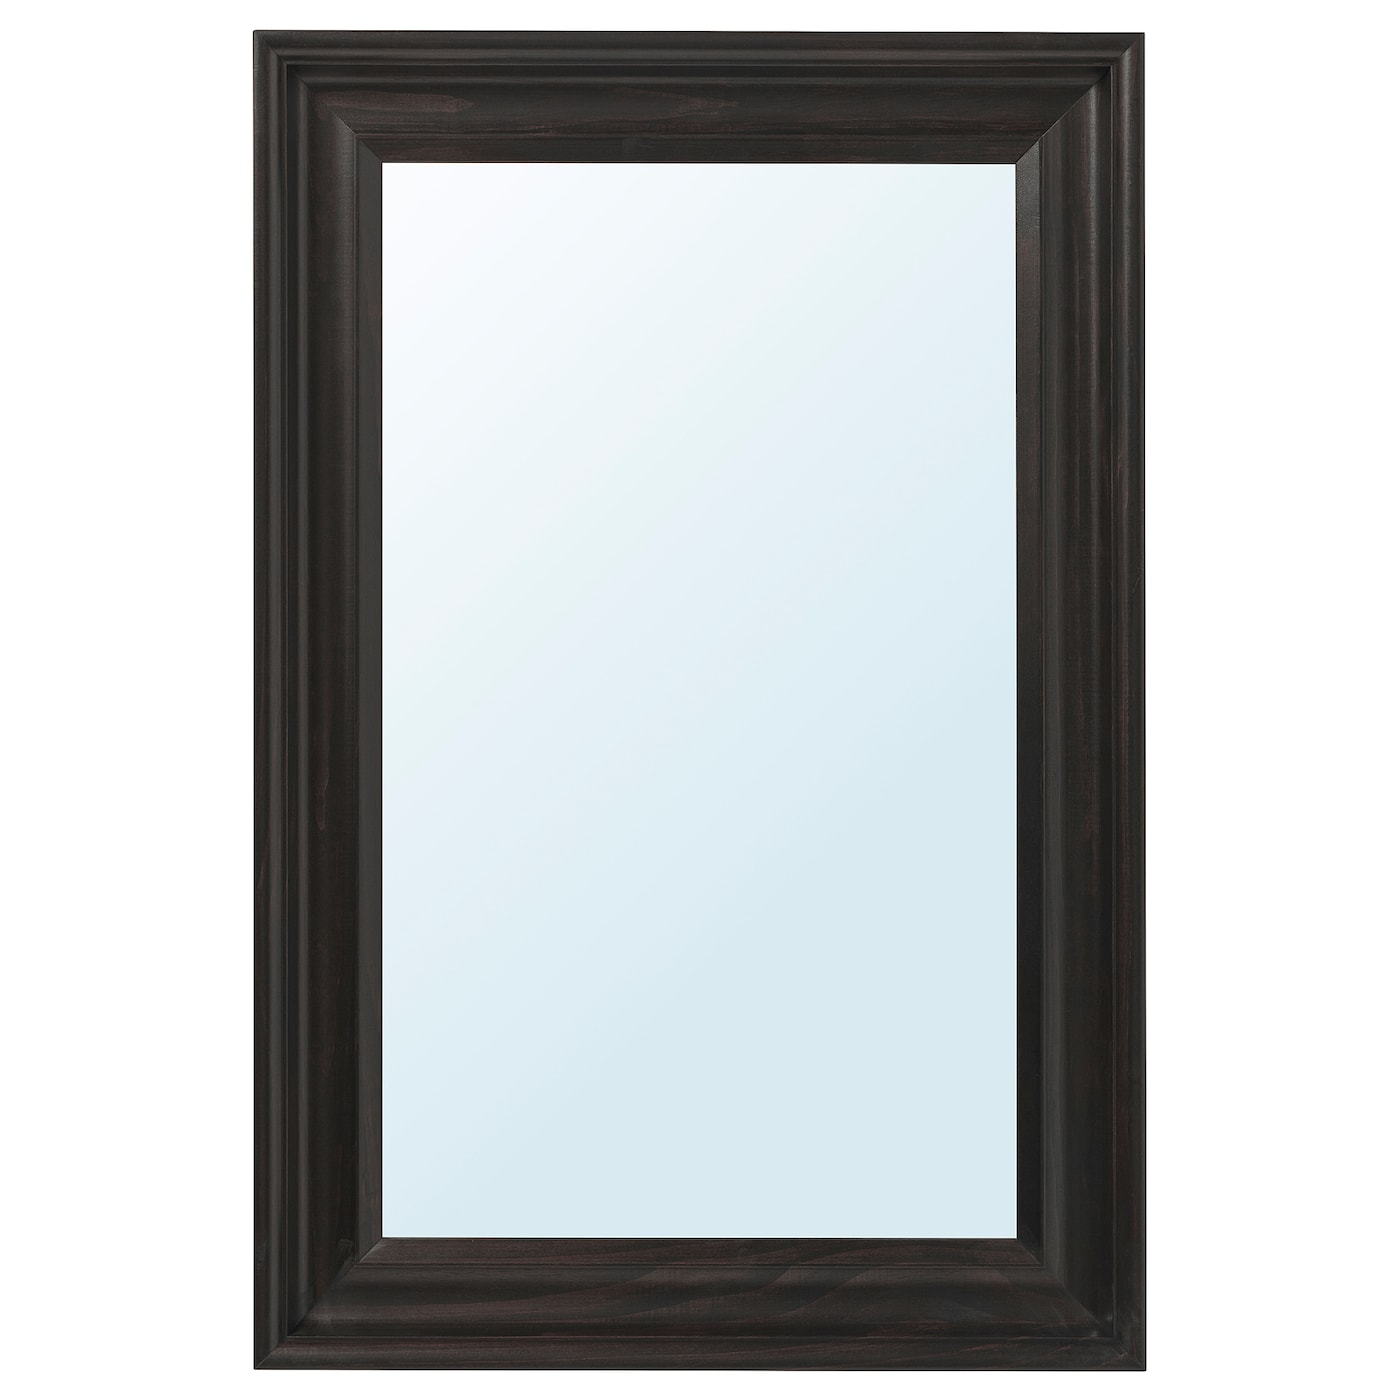 IKEA HEMNES mirror Provided with safety film - reduces damage if glass is broken.